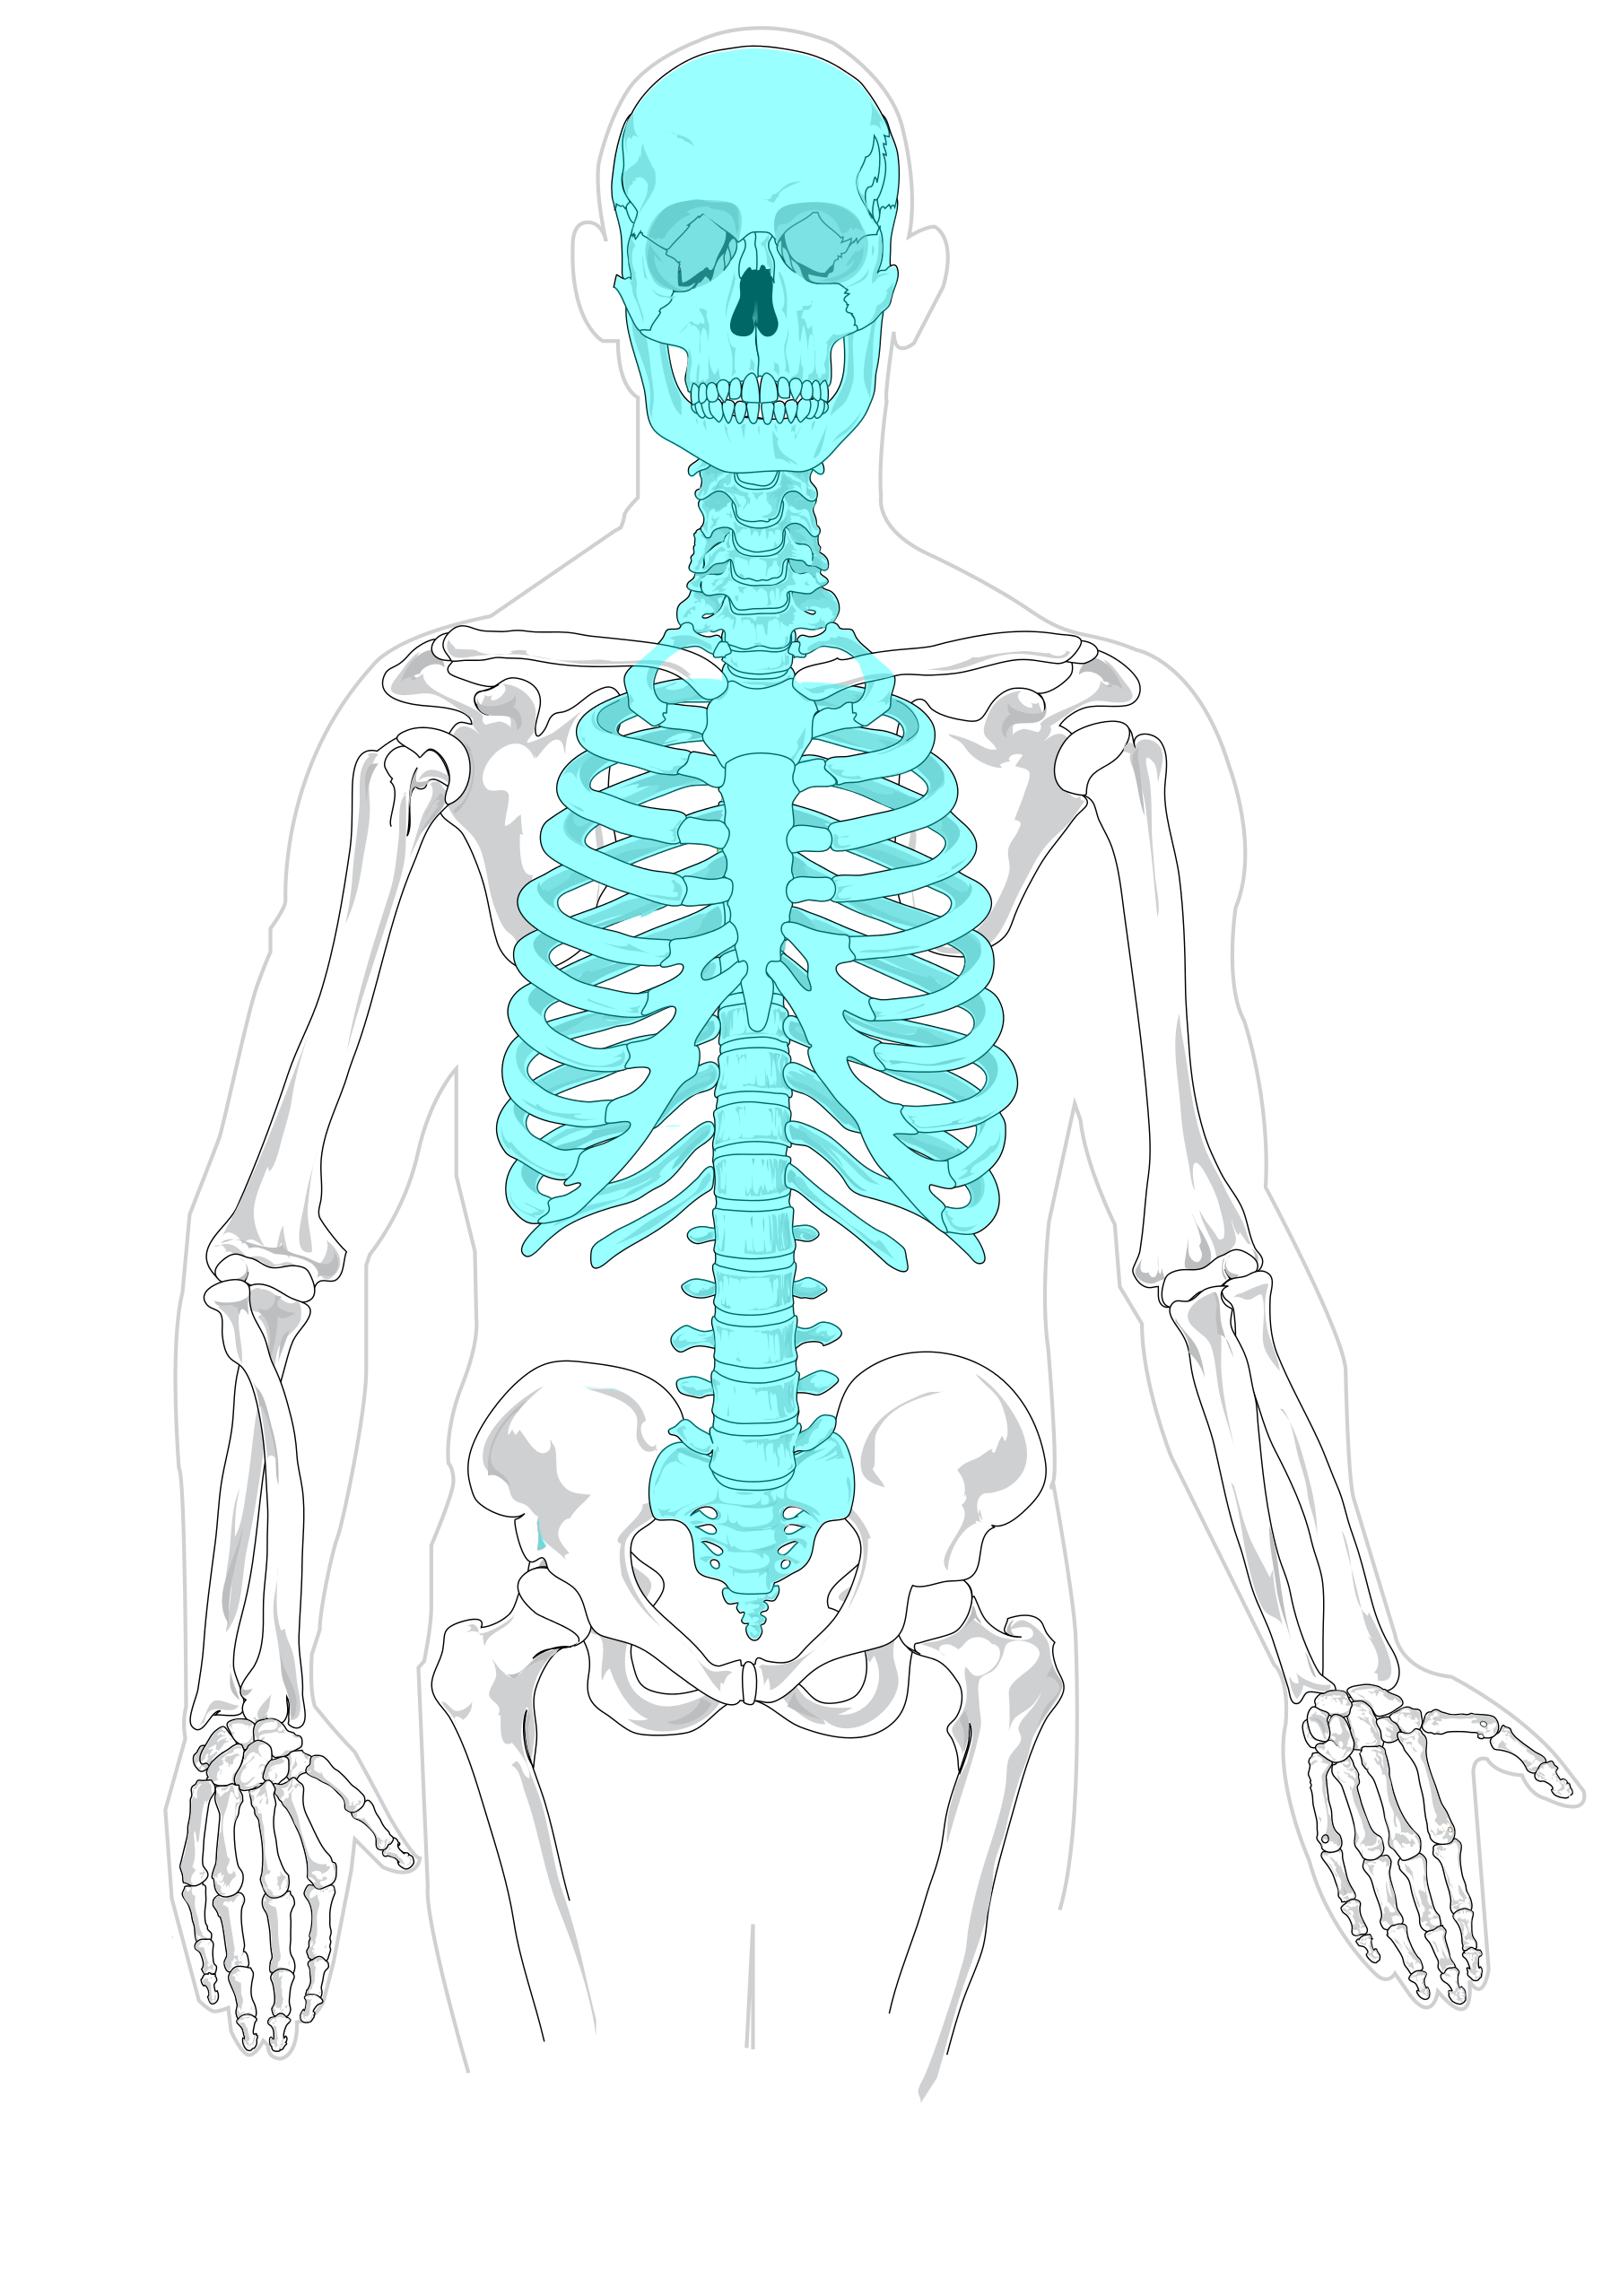 File:Axial skeleton diagram blank.svg - Wikimedia Commons | Home ...